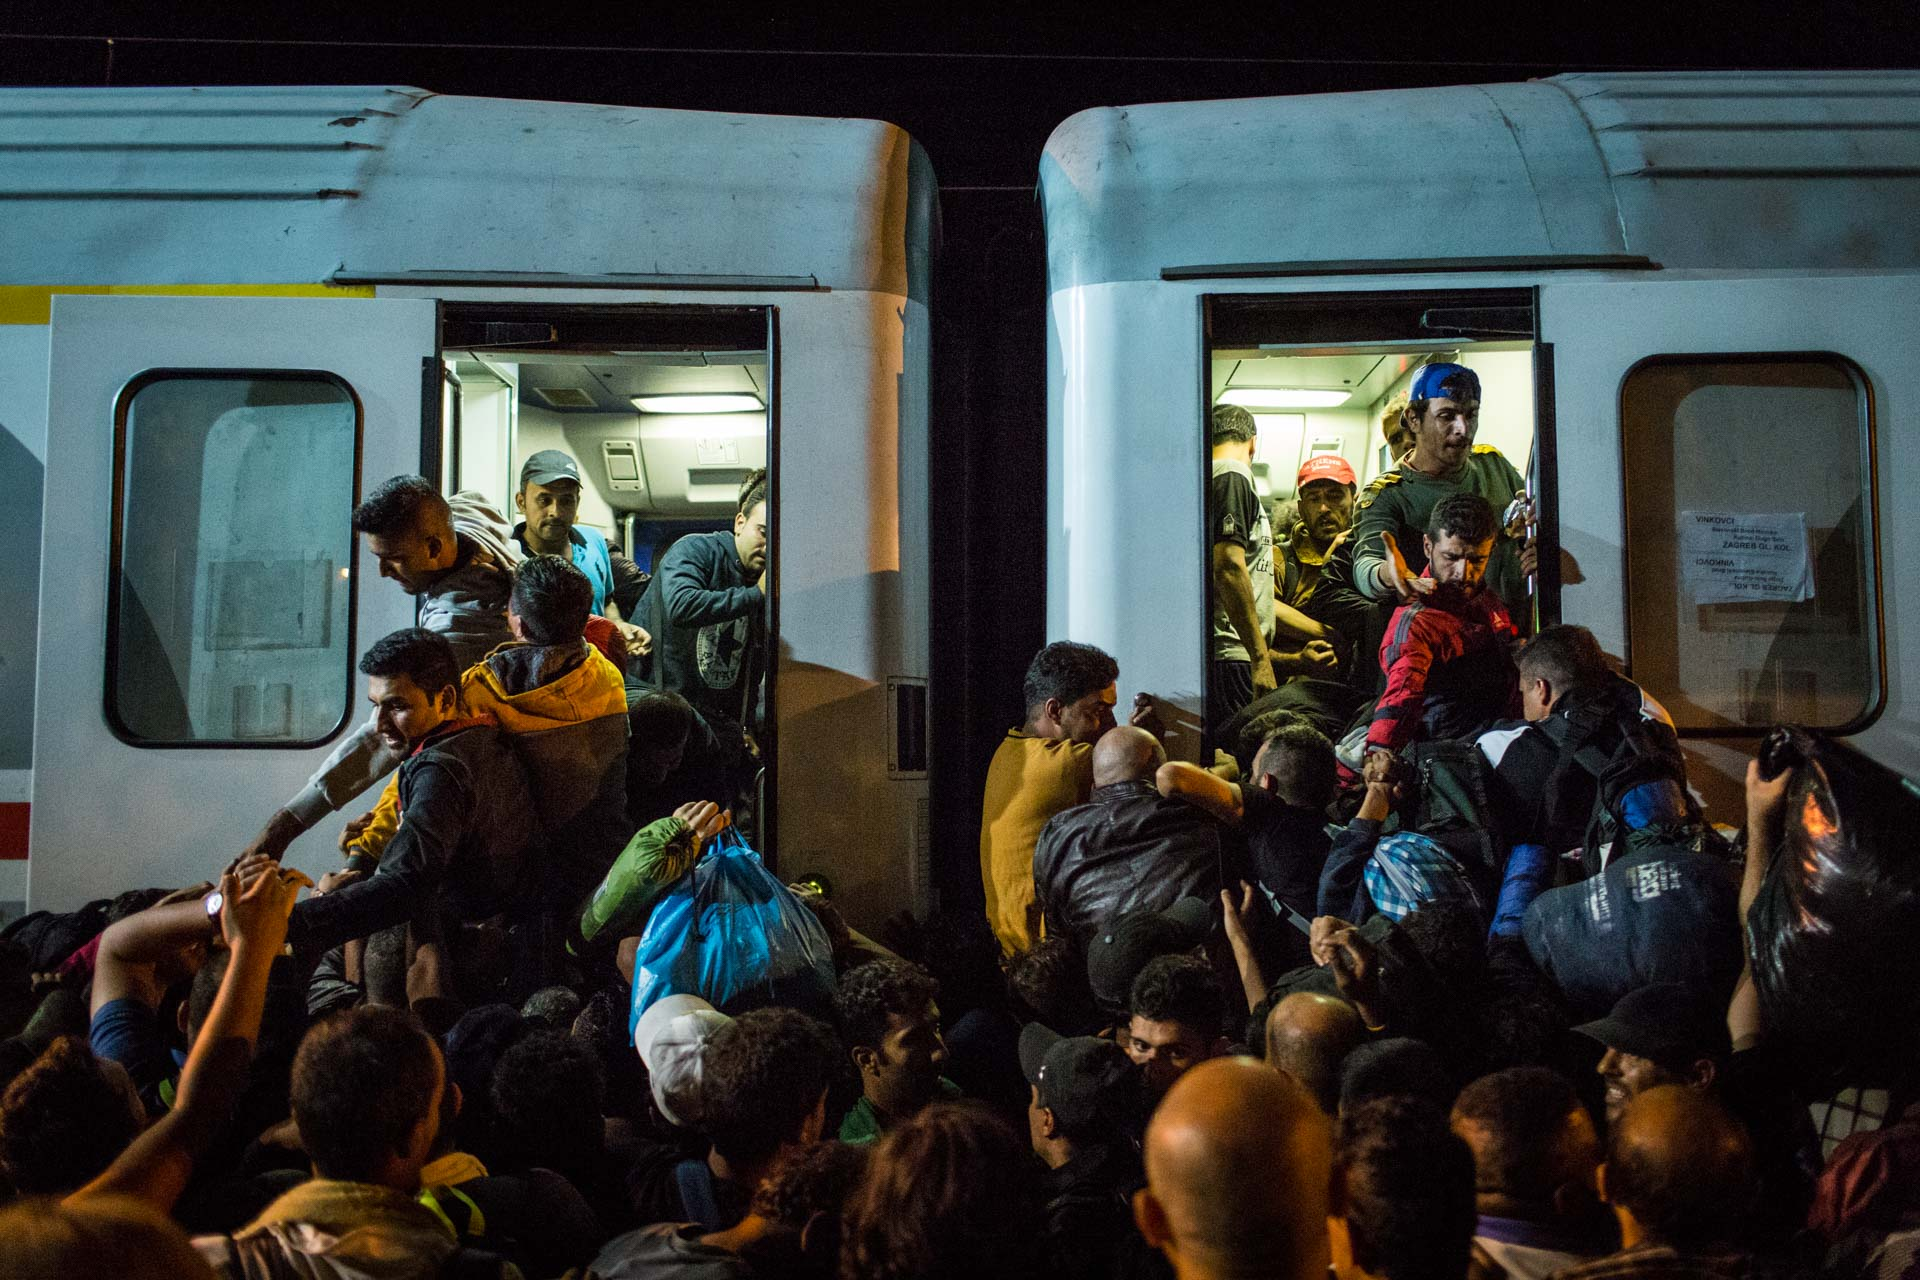 With the very limited capacity of the train transferring them to Slovenia, many refugees lost all compassion and empathy and started to fight for a place on the train.